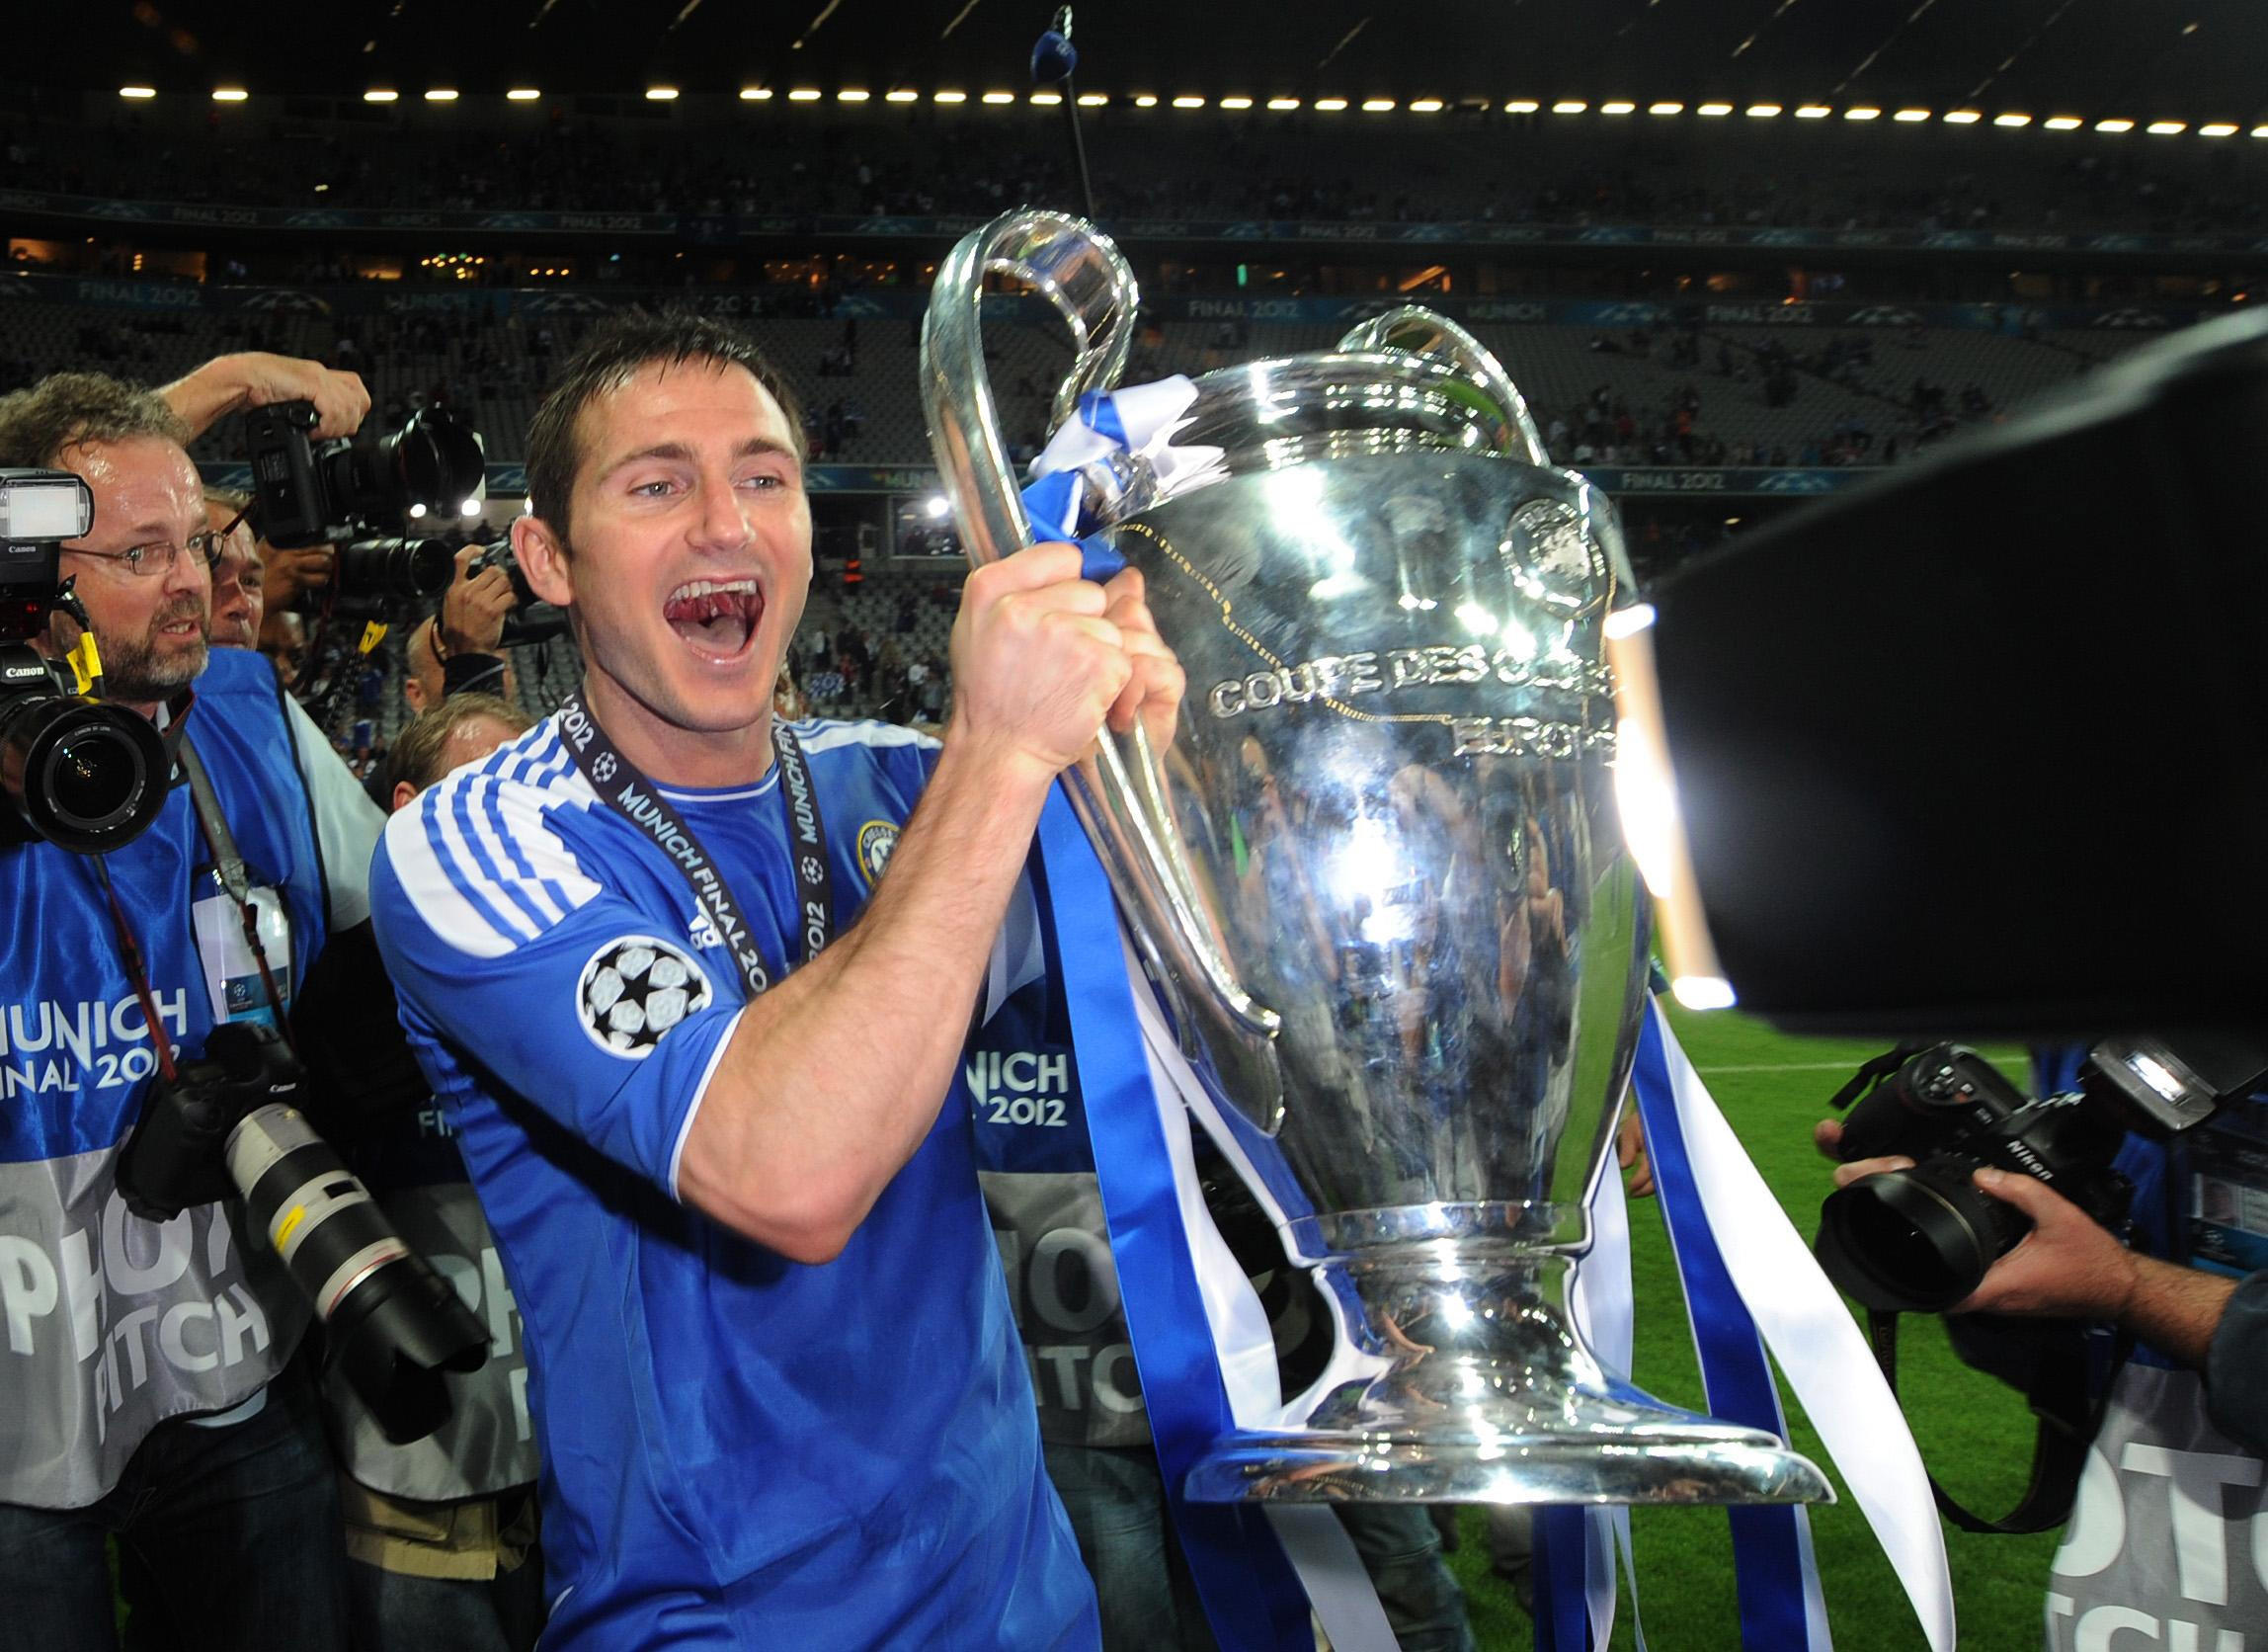 Frank Lampard had a a hugely successful spell as a player at Stamford Bridge